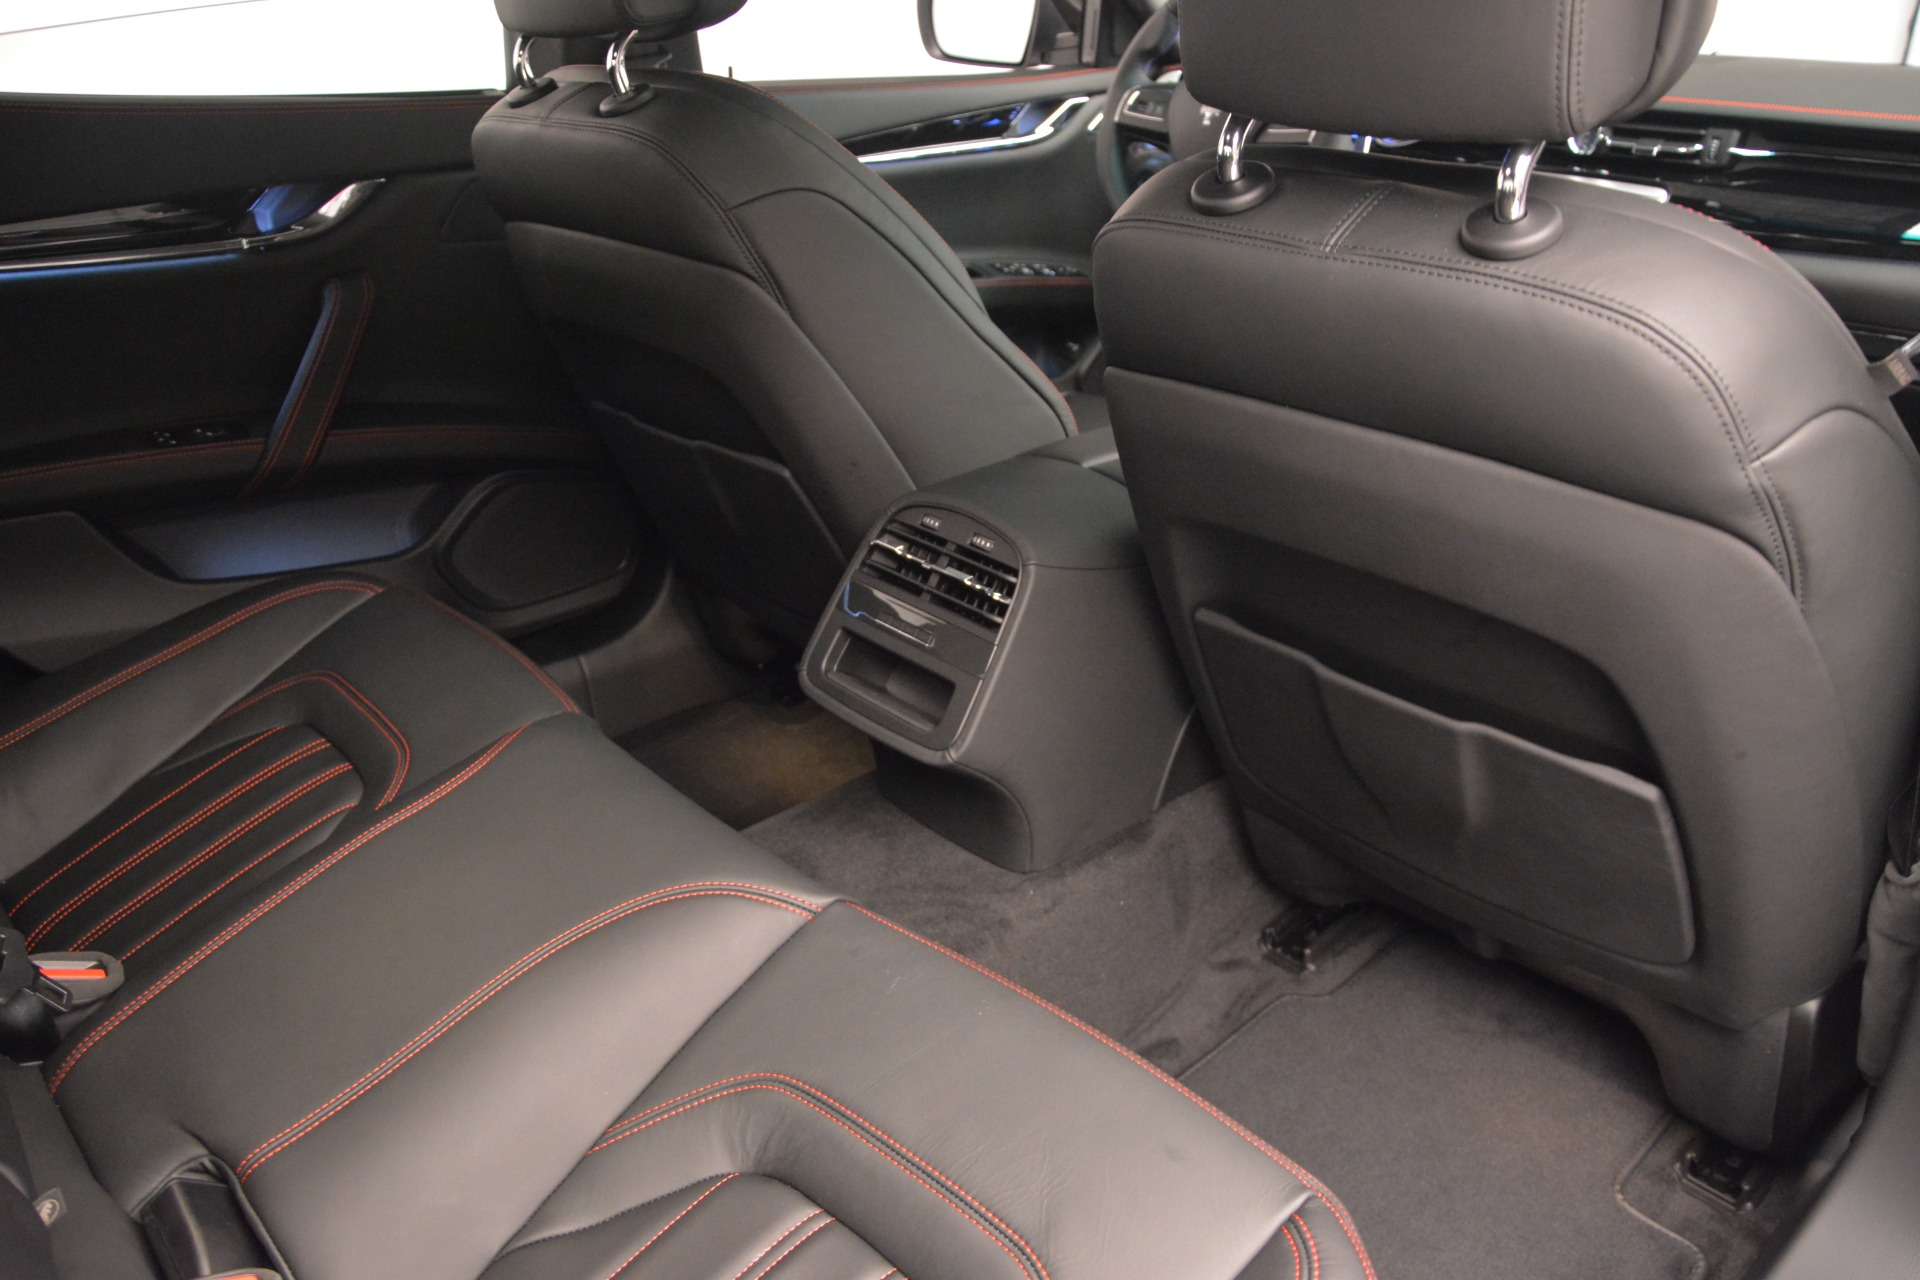 Used 2015 Maserati Quattroporte GTS For Sale In Westport, CT 2993_p22